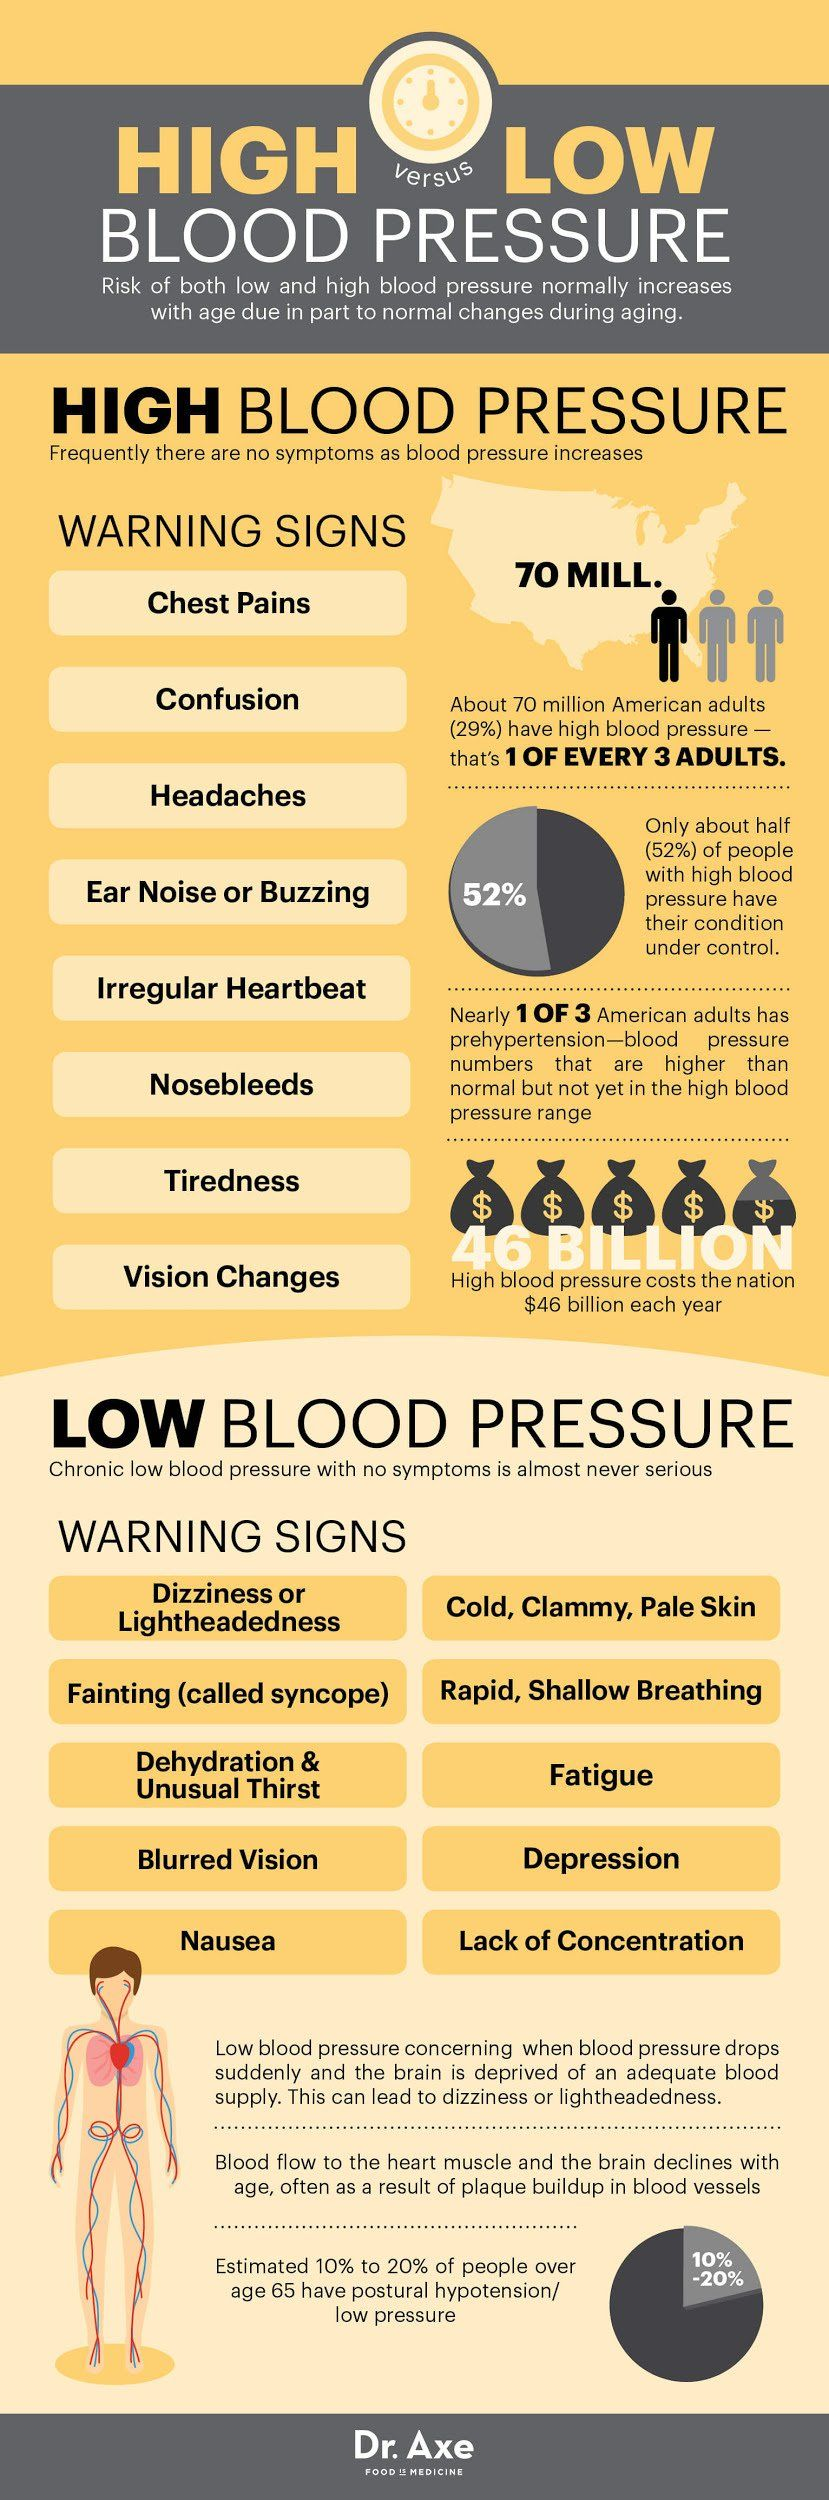 High Blood Pressure Symptoms And Natural Prevention Pilates